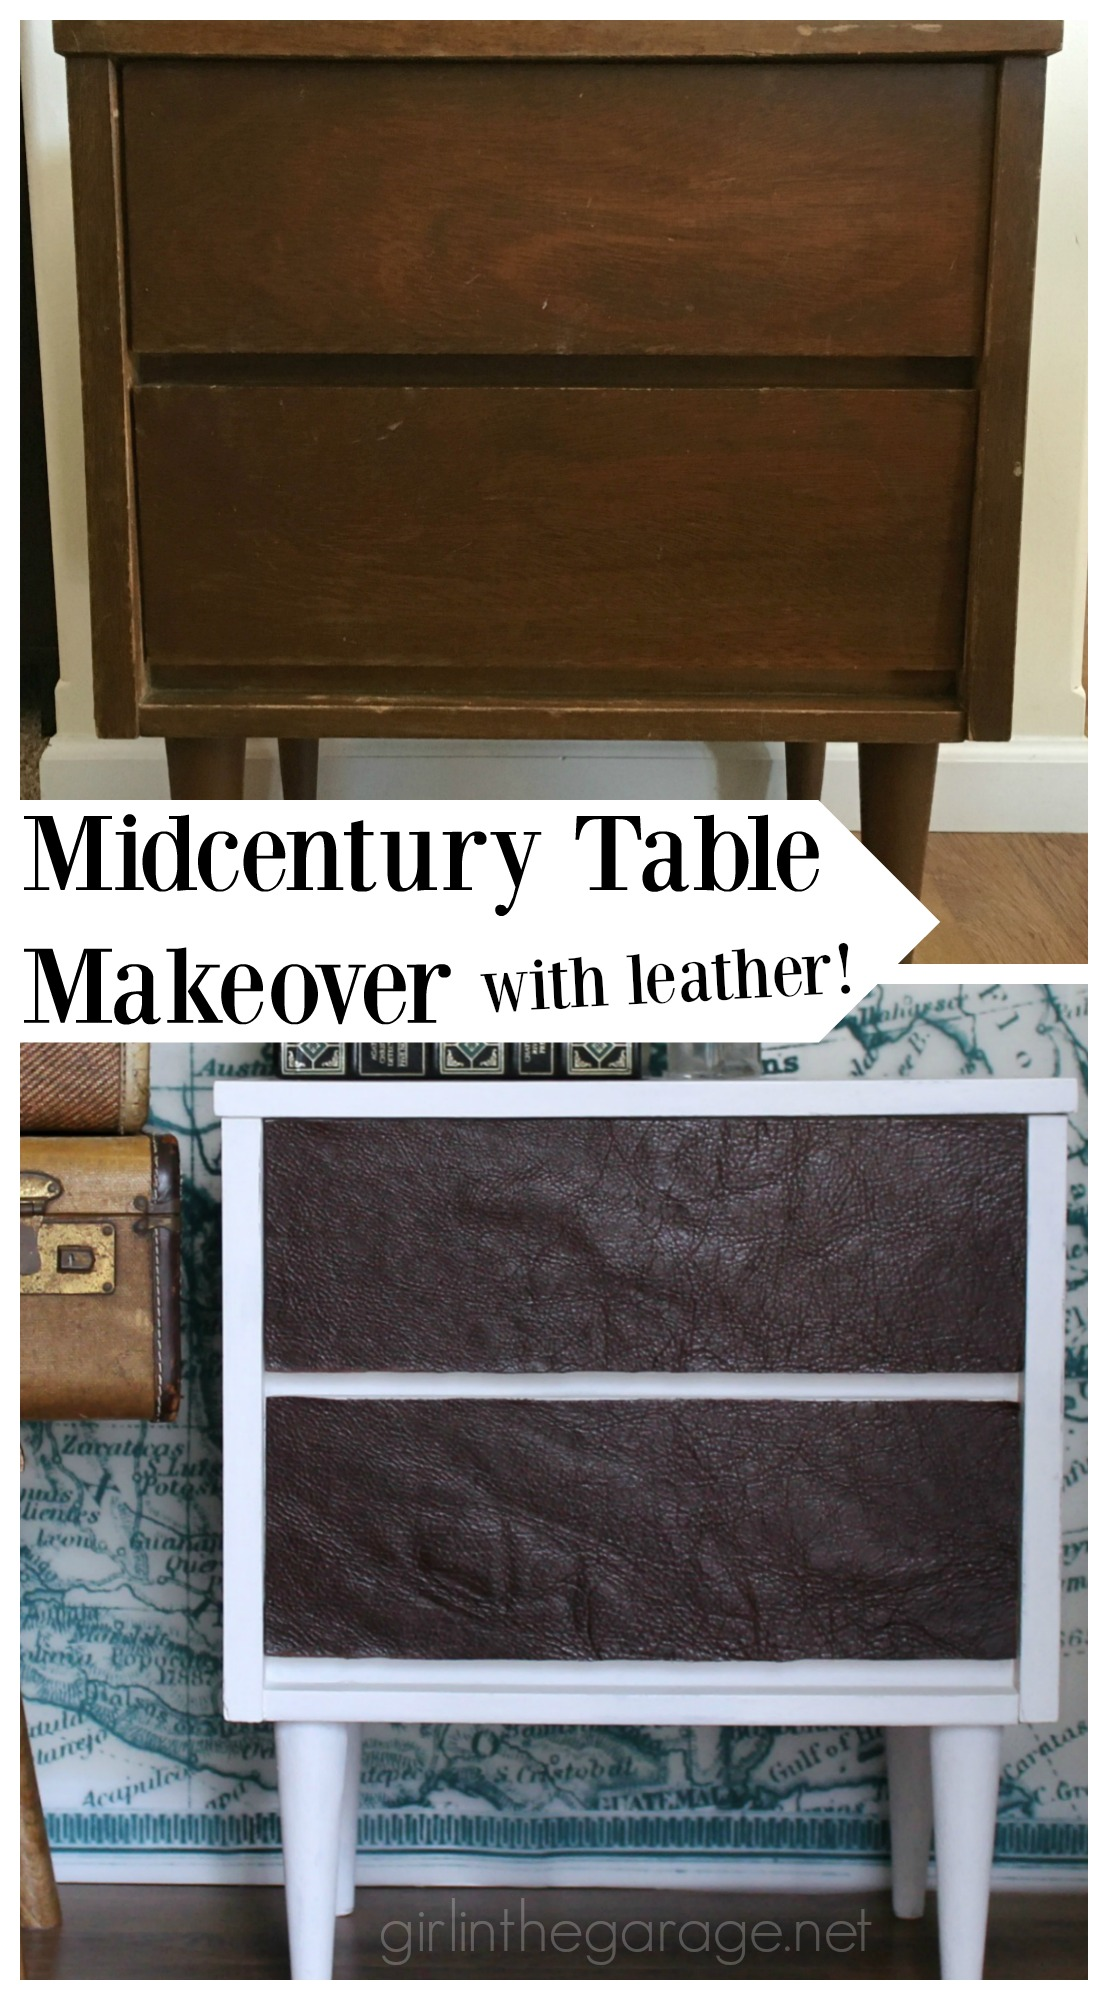 Midcentury Table Makeover with Leather (and a giveaway!) - Girl in the Garage